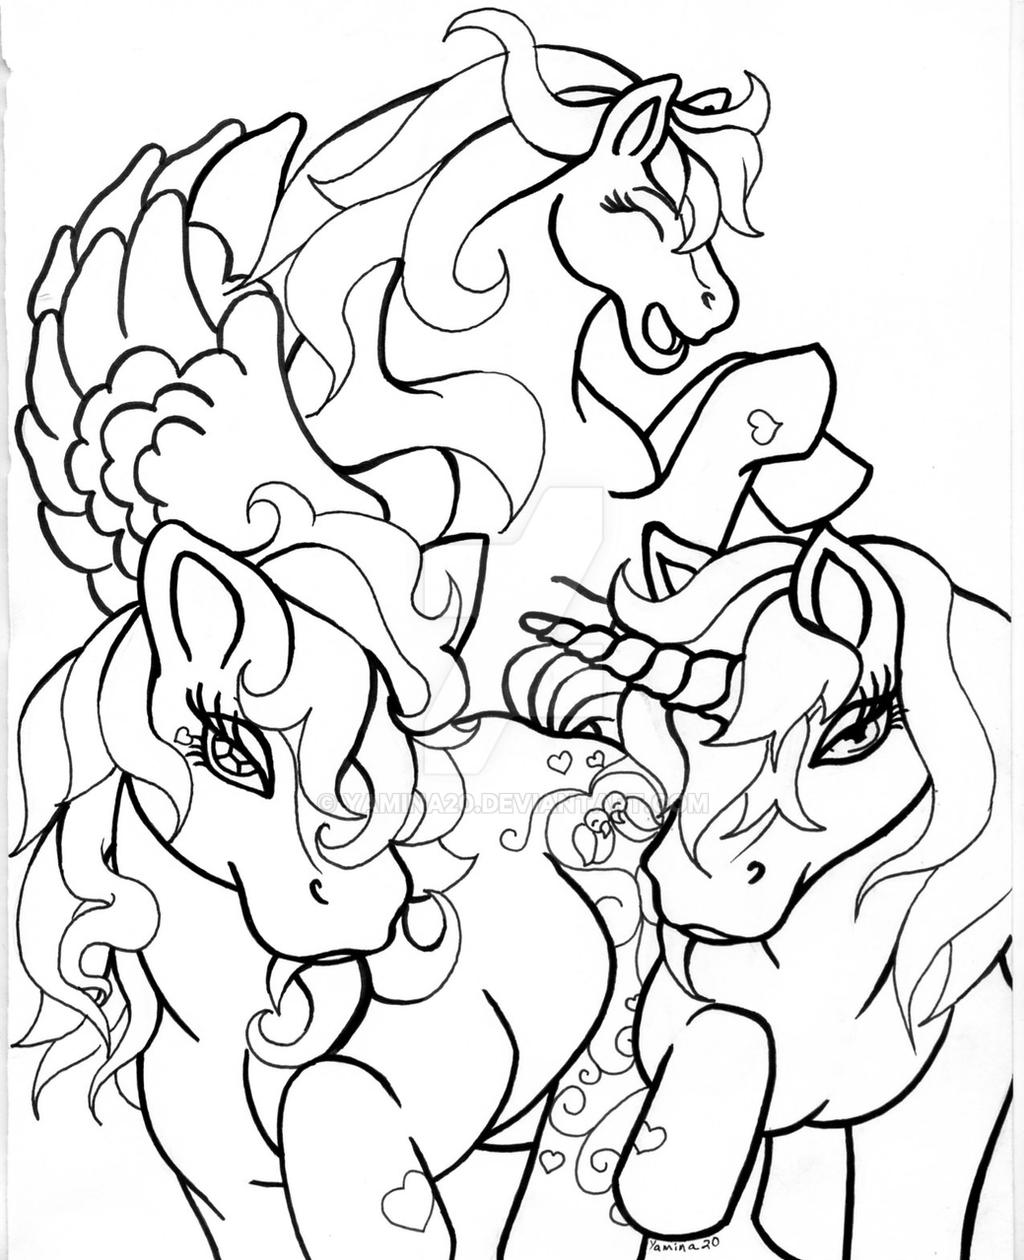 my little pony coloring page by yamina20 on deviantart